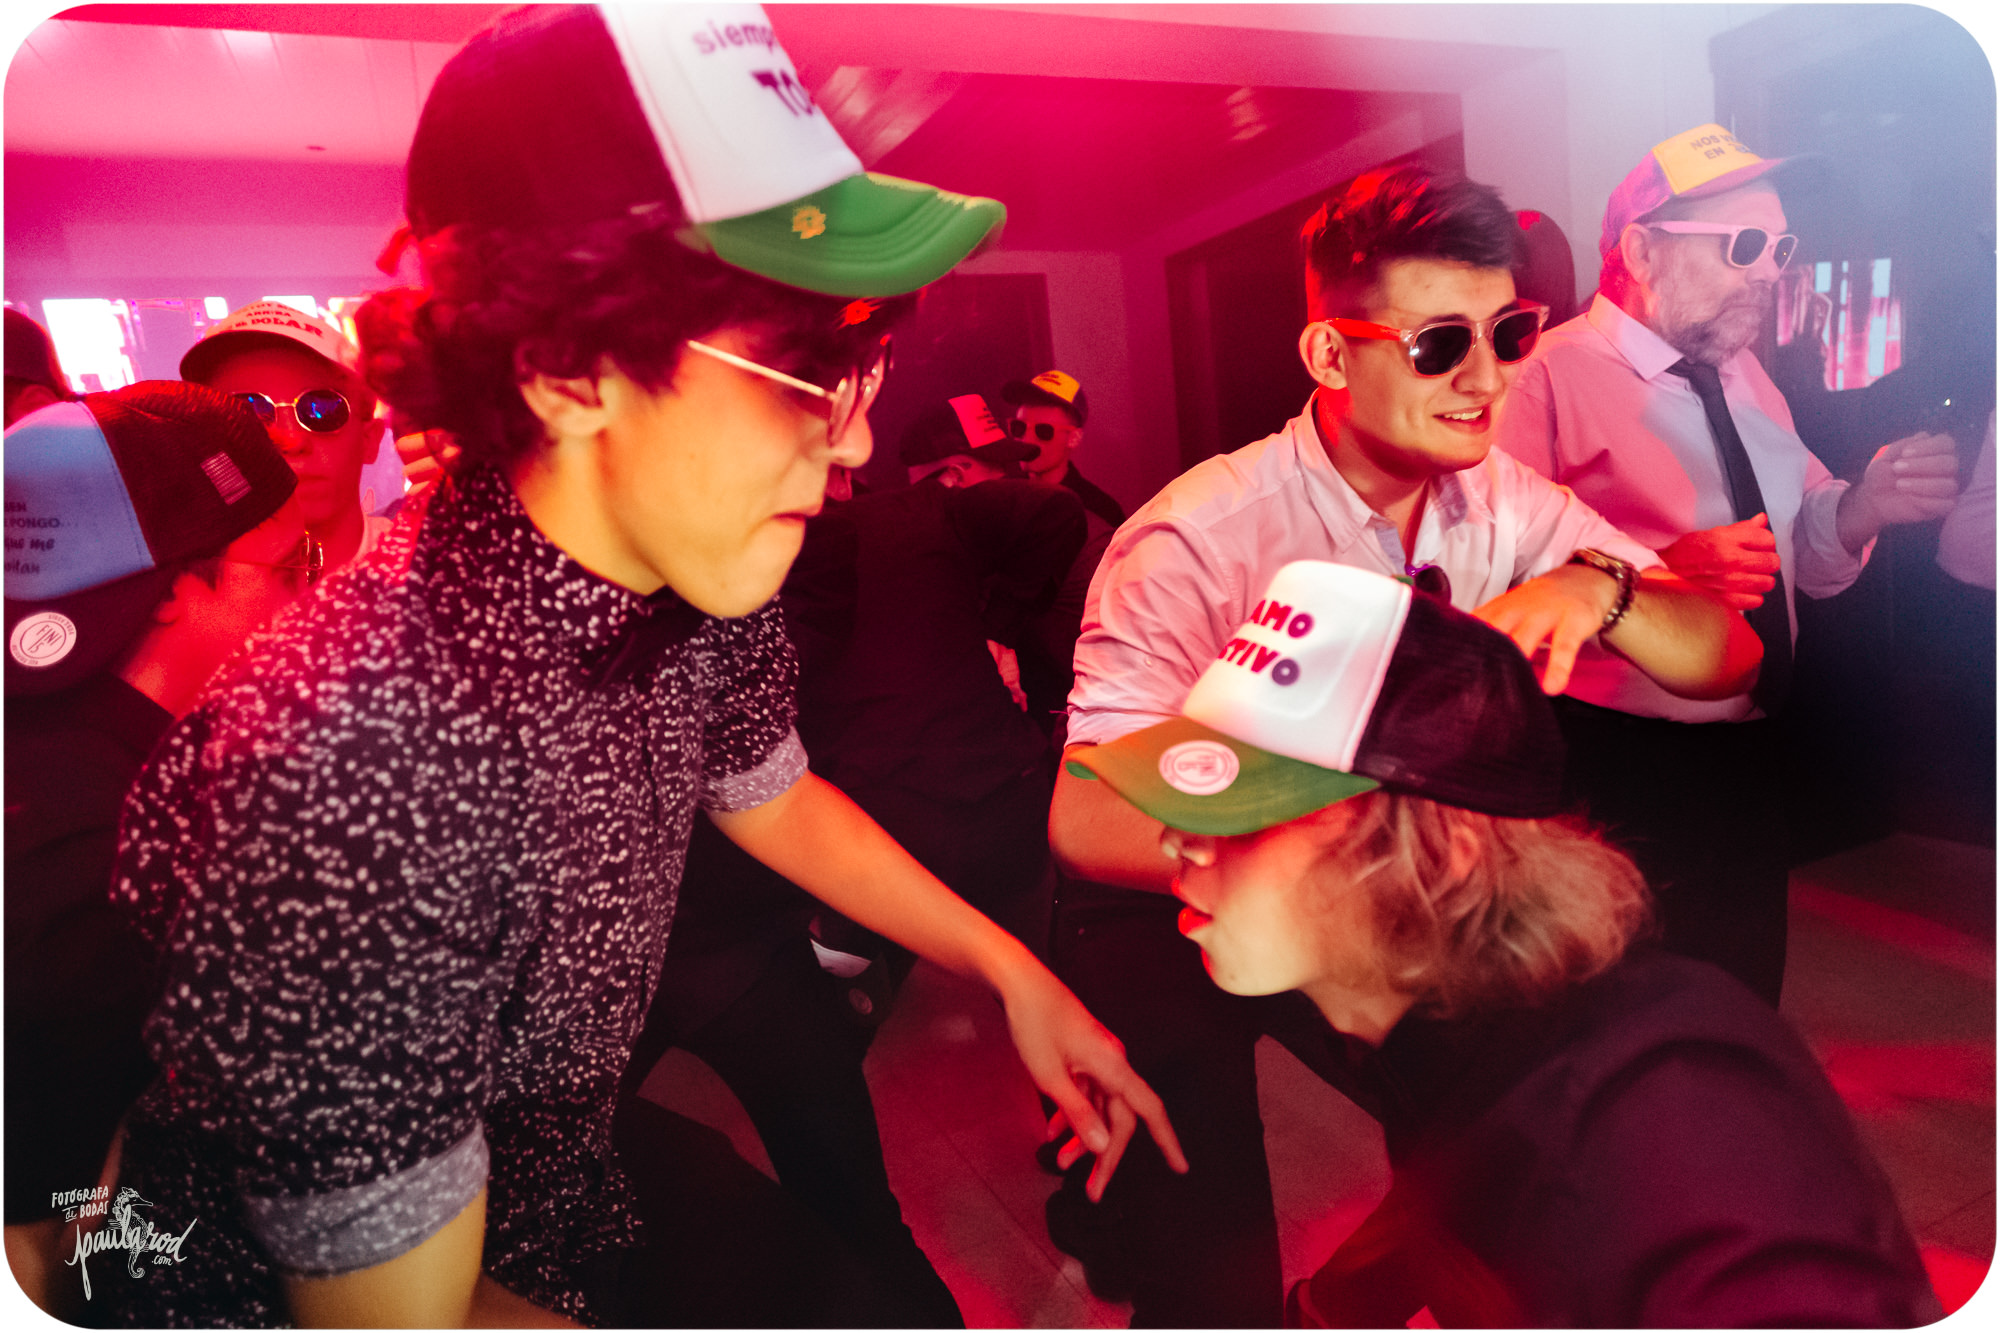 fotografia_documental_para_quinces_en_haedo-2 (10).jpg